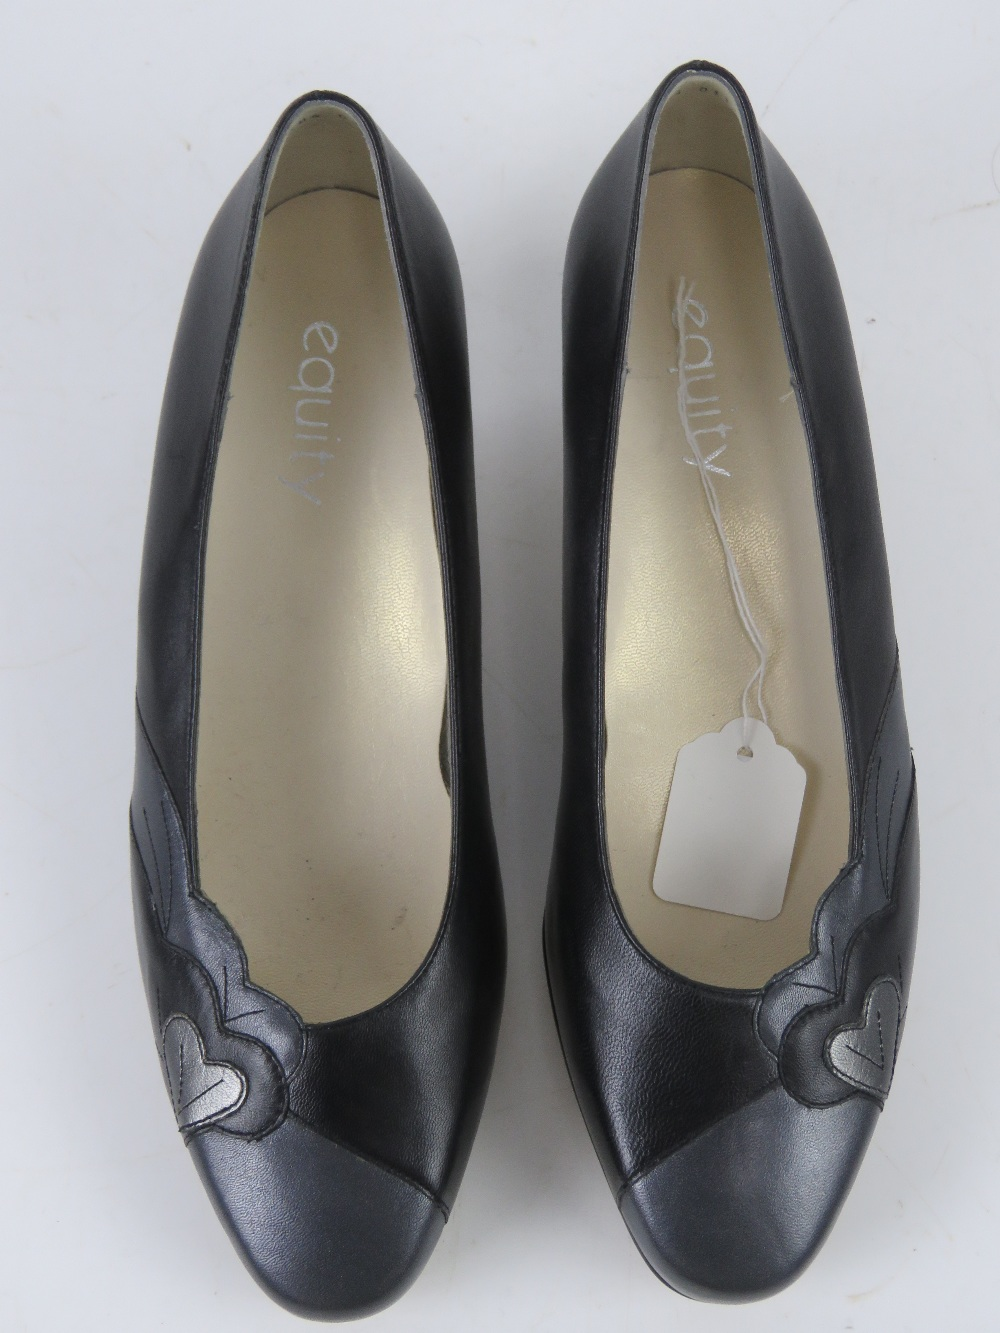 A pair of 'as new' leather ladies shoes - Image 2 of 4